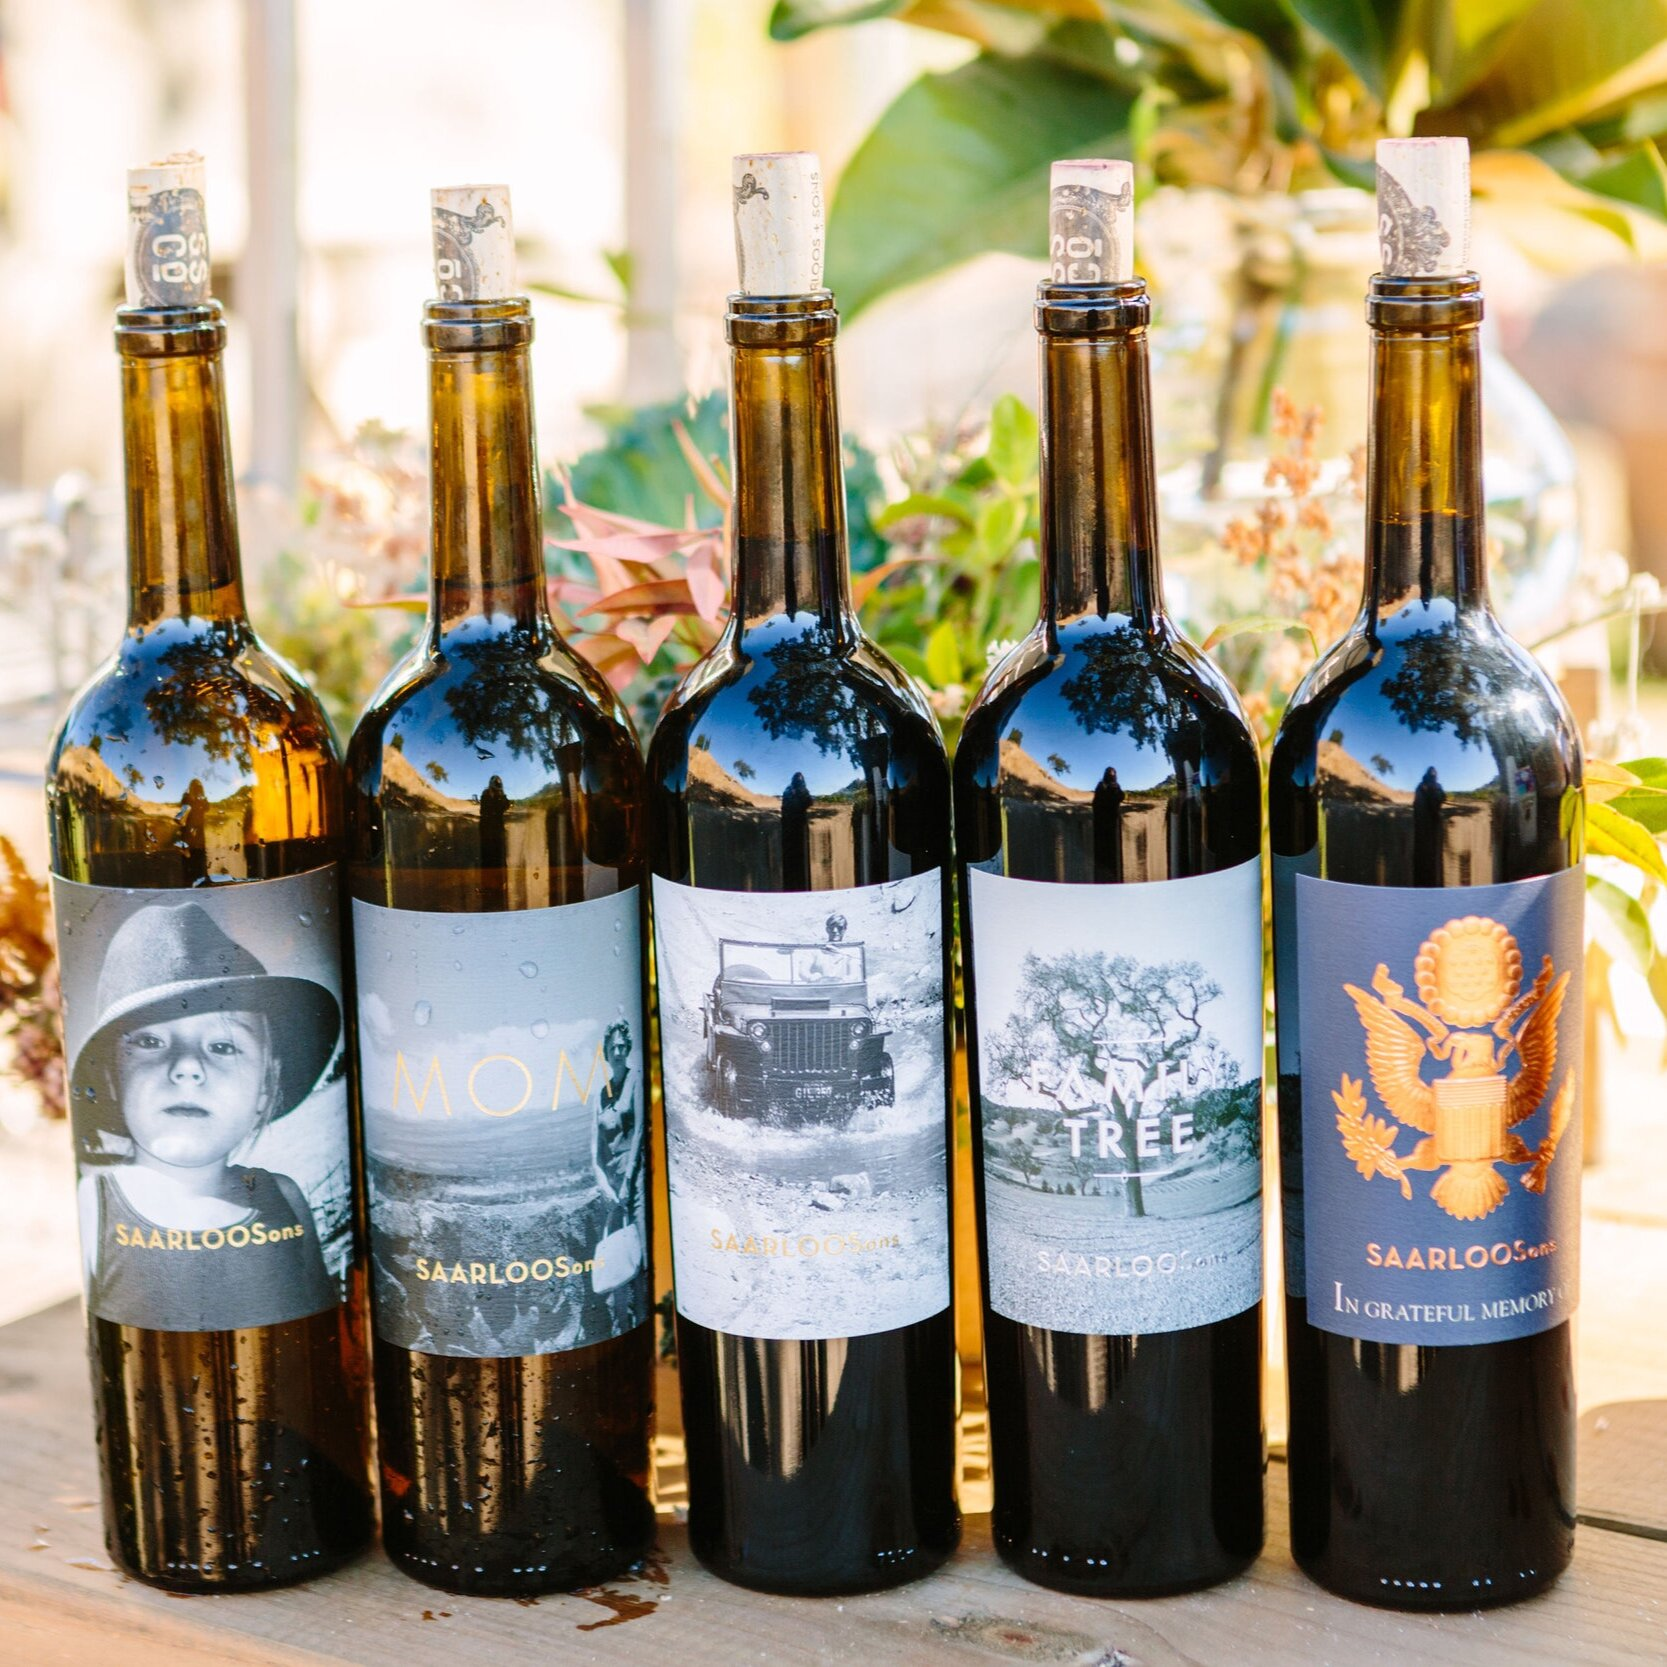 CLICK HERE TO GET THE VINEYARD DAY OFFERINGS